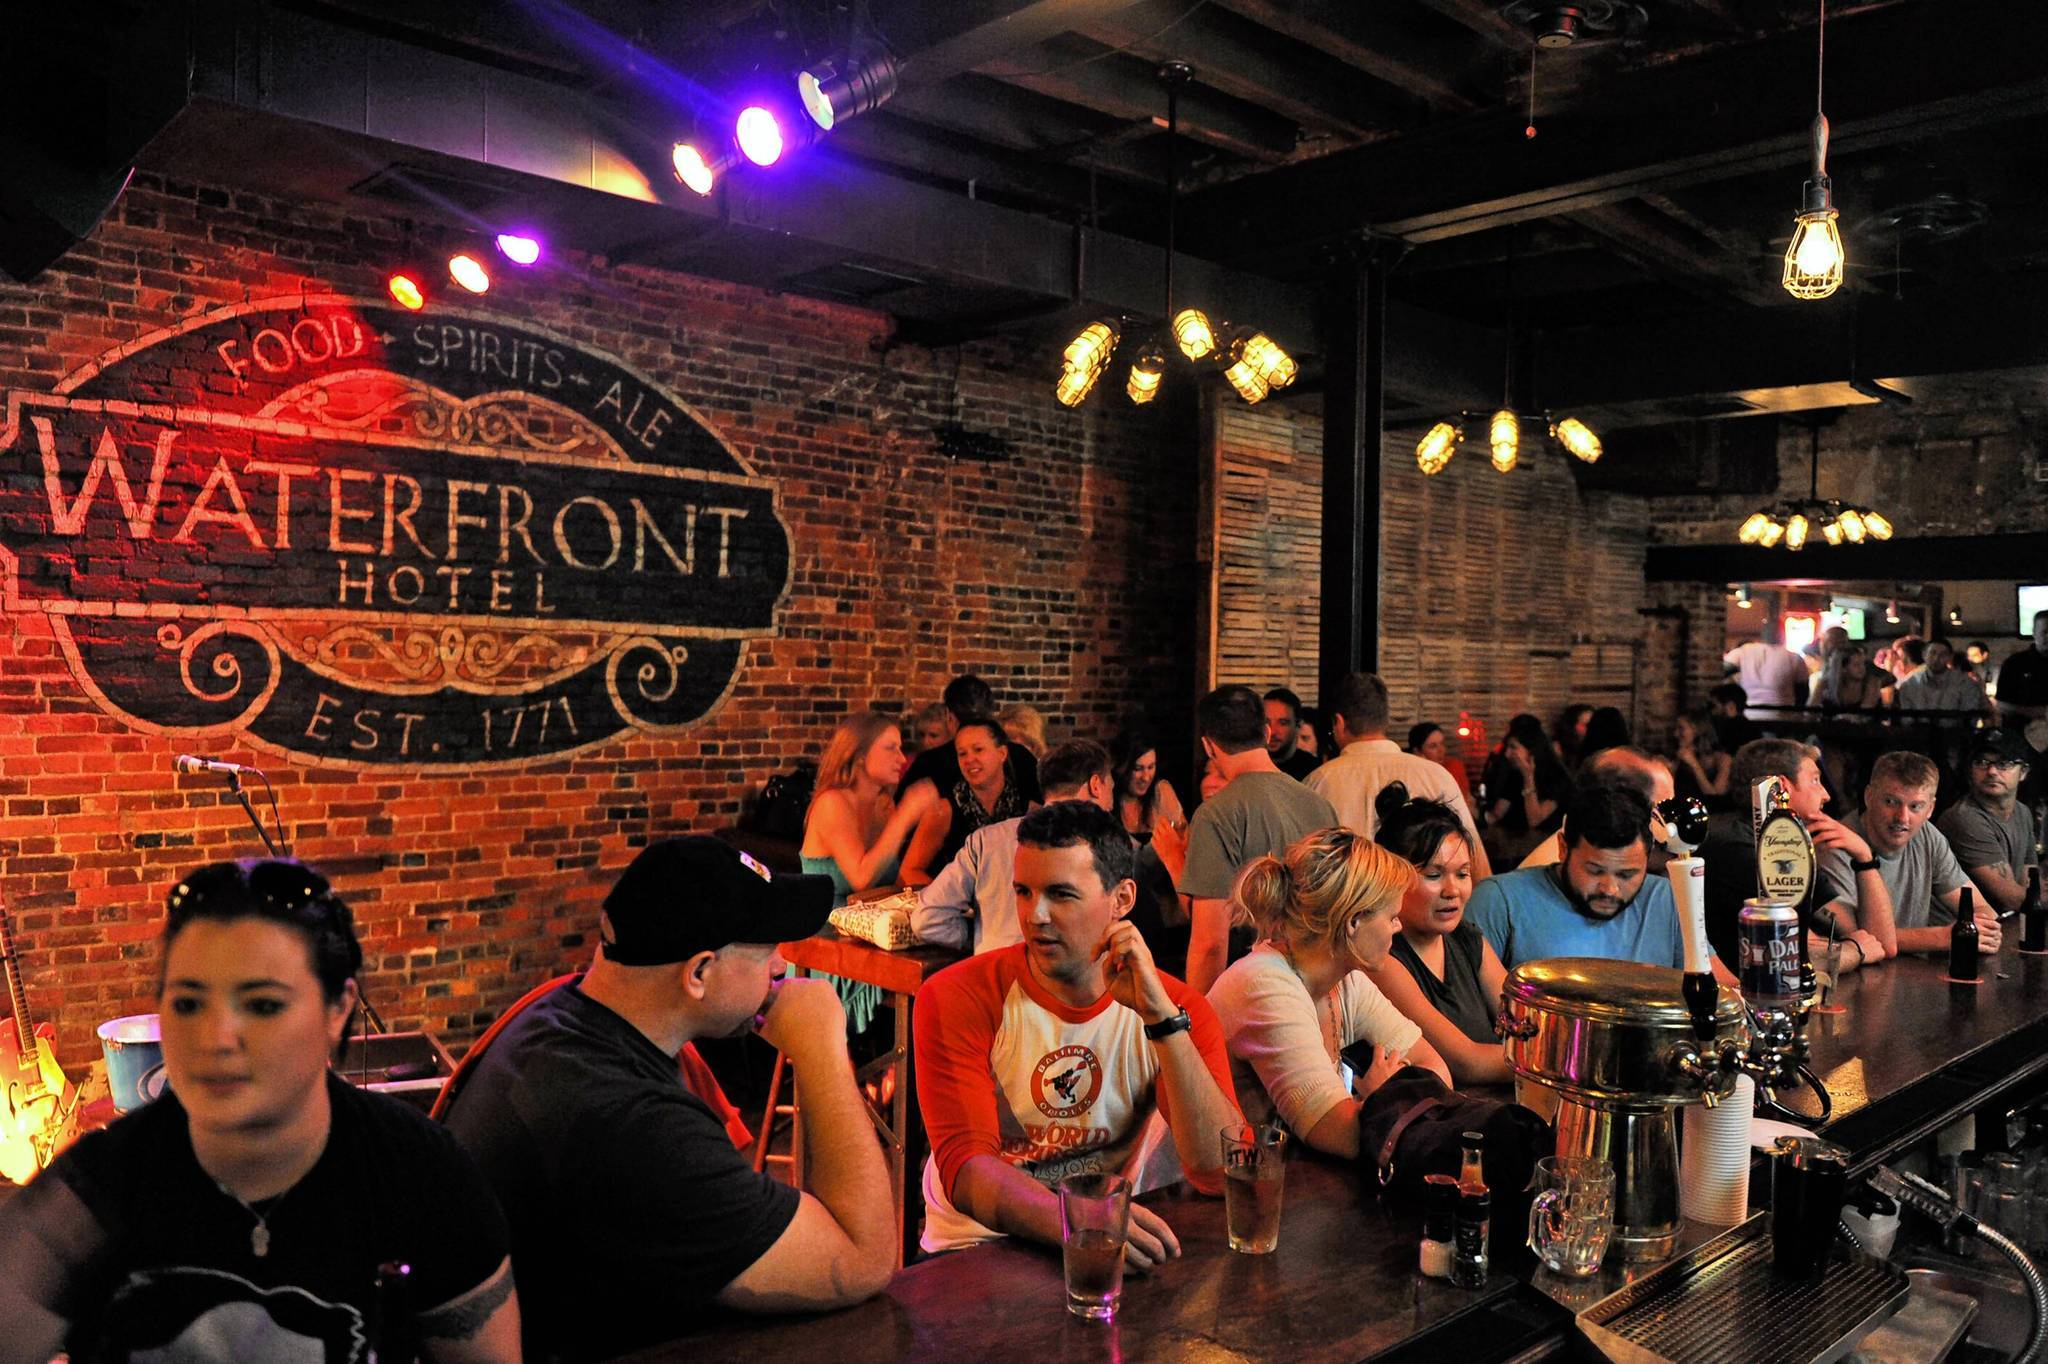 The Waterfront Hotel In Fells Point Recently Updated Its Management And Decor